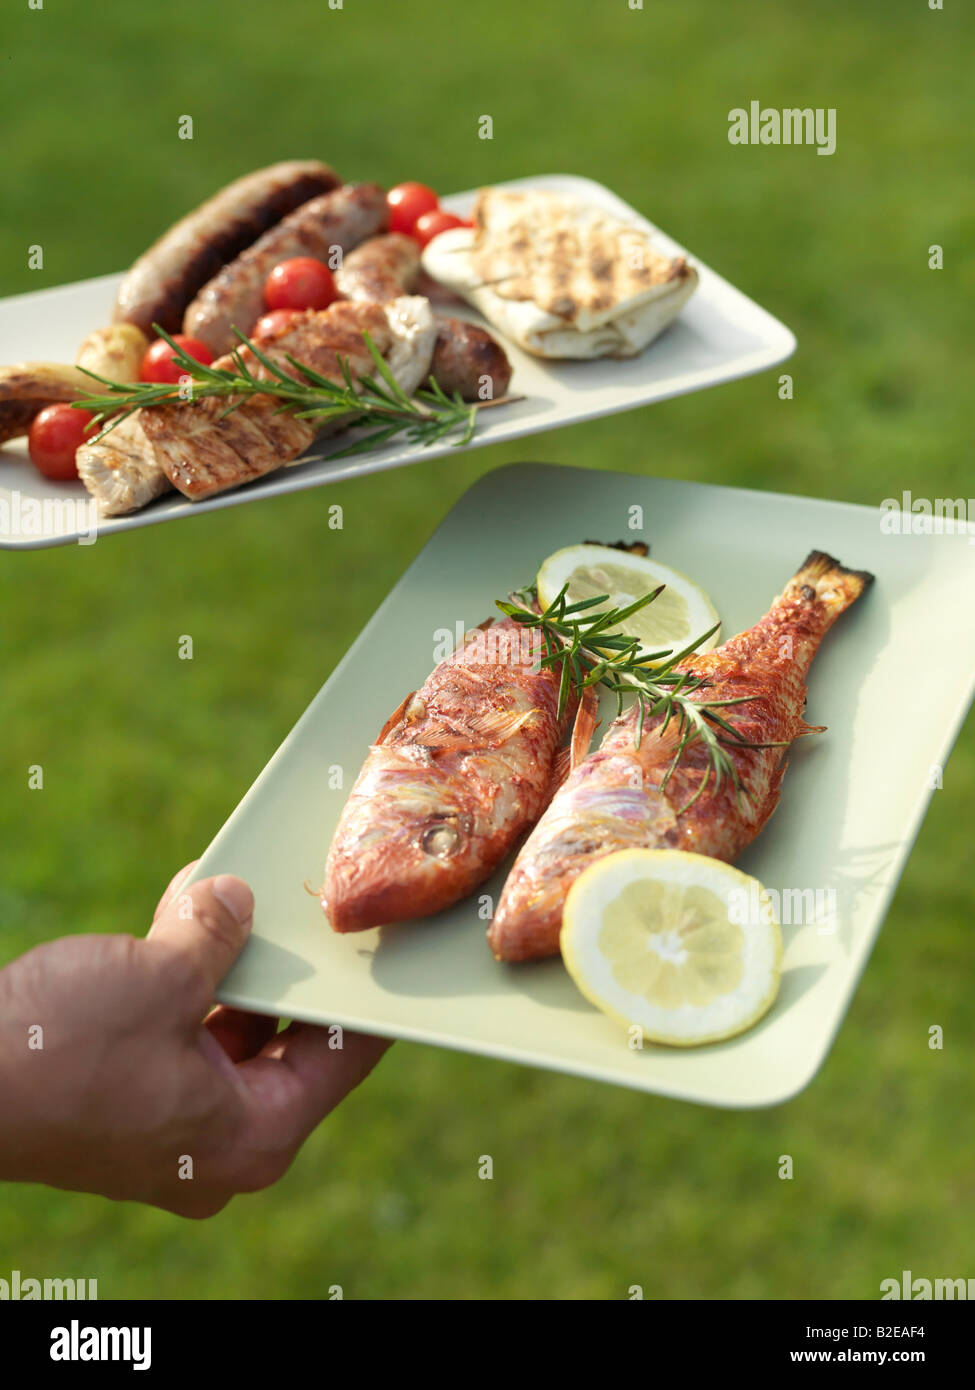 Close-up of person's hand holding grilled food on plates - Stock Image